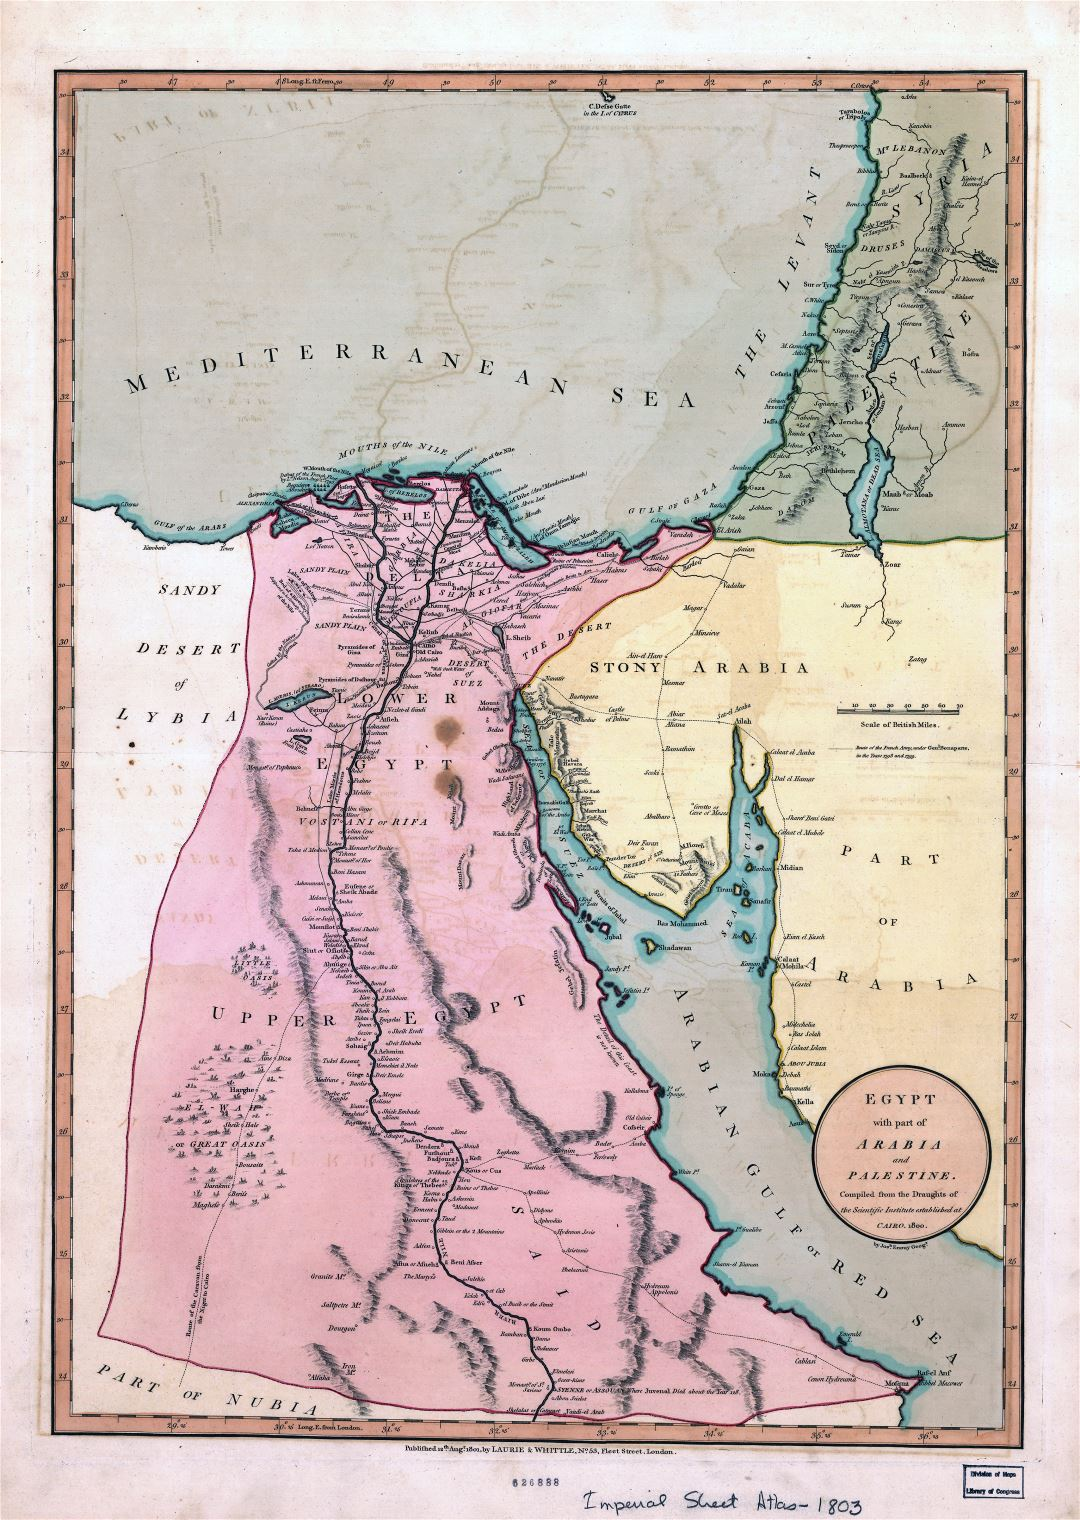 Large detailed old map of Egypt with part of Arabia and Palestine - 1800